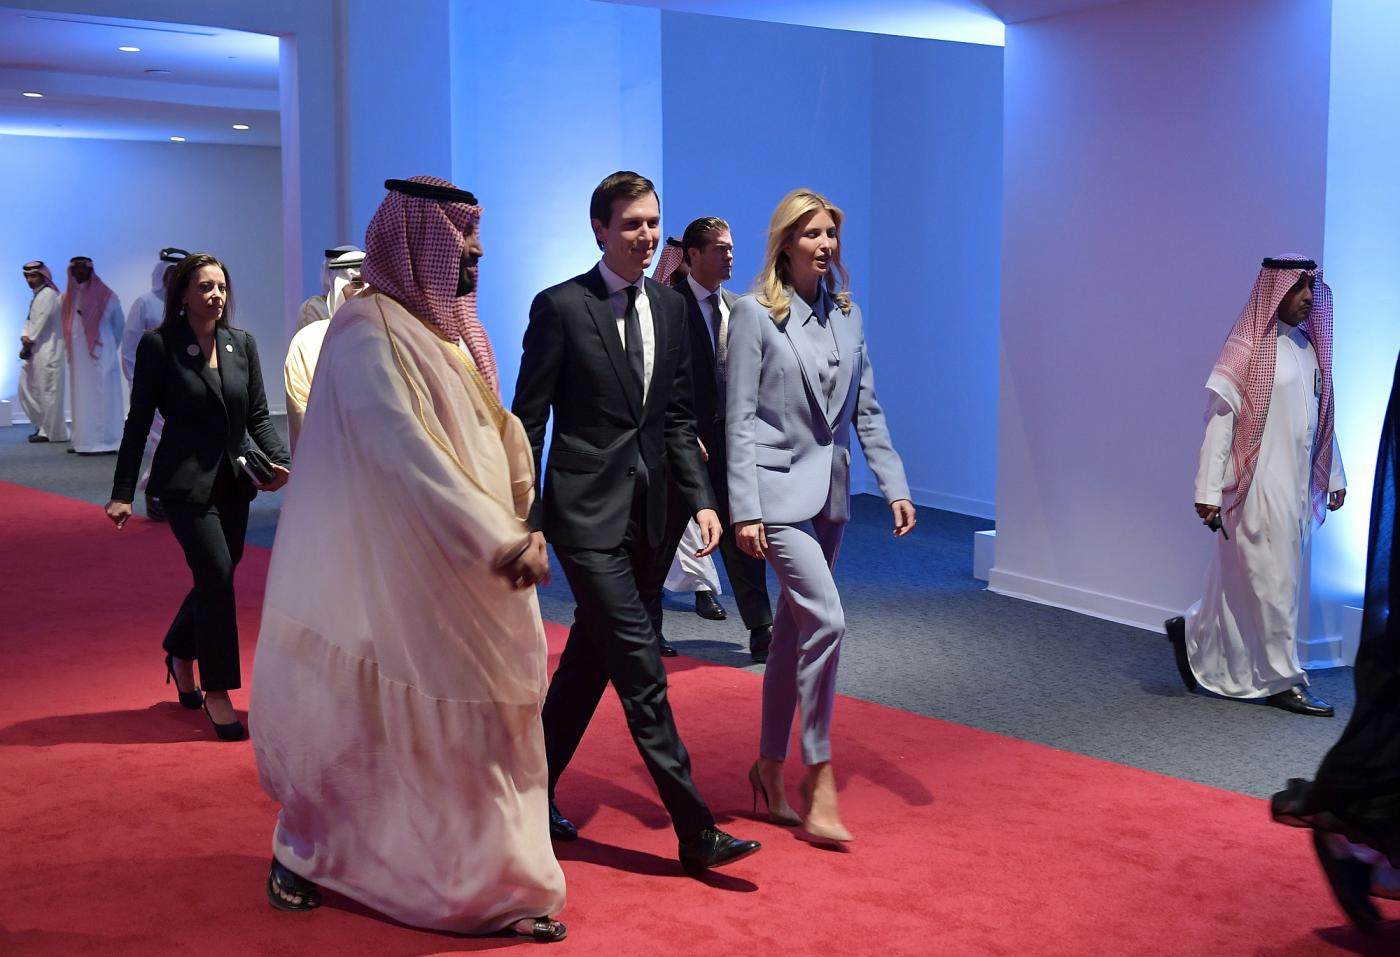 Saudi Crown Prince Mohammed bin Salman walks with US presidential adviser Jared Kushner and his wife, Ivanka Trump, in 2017 (AFP/File photo)